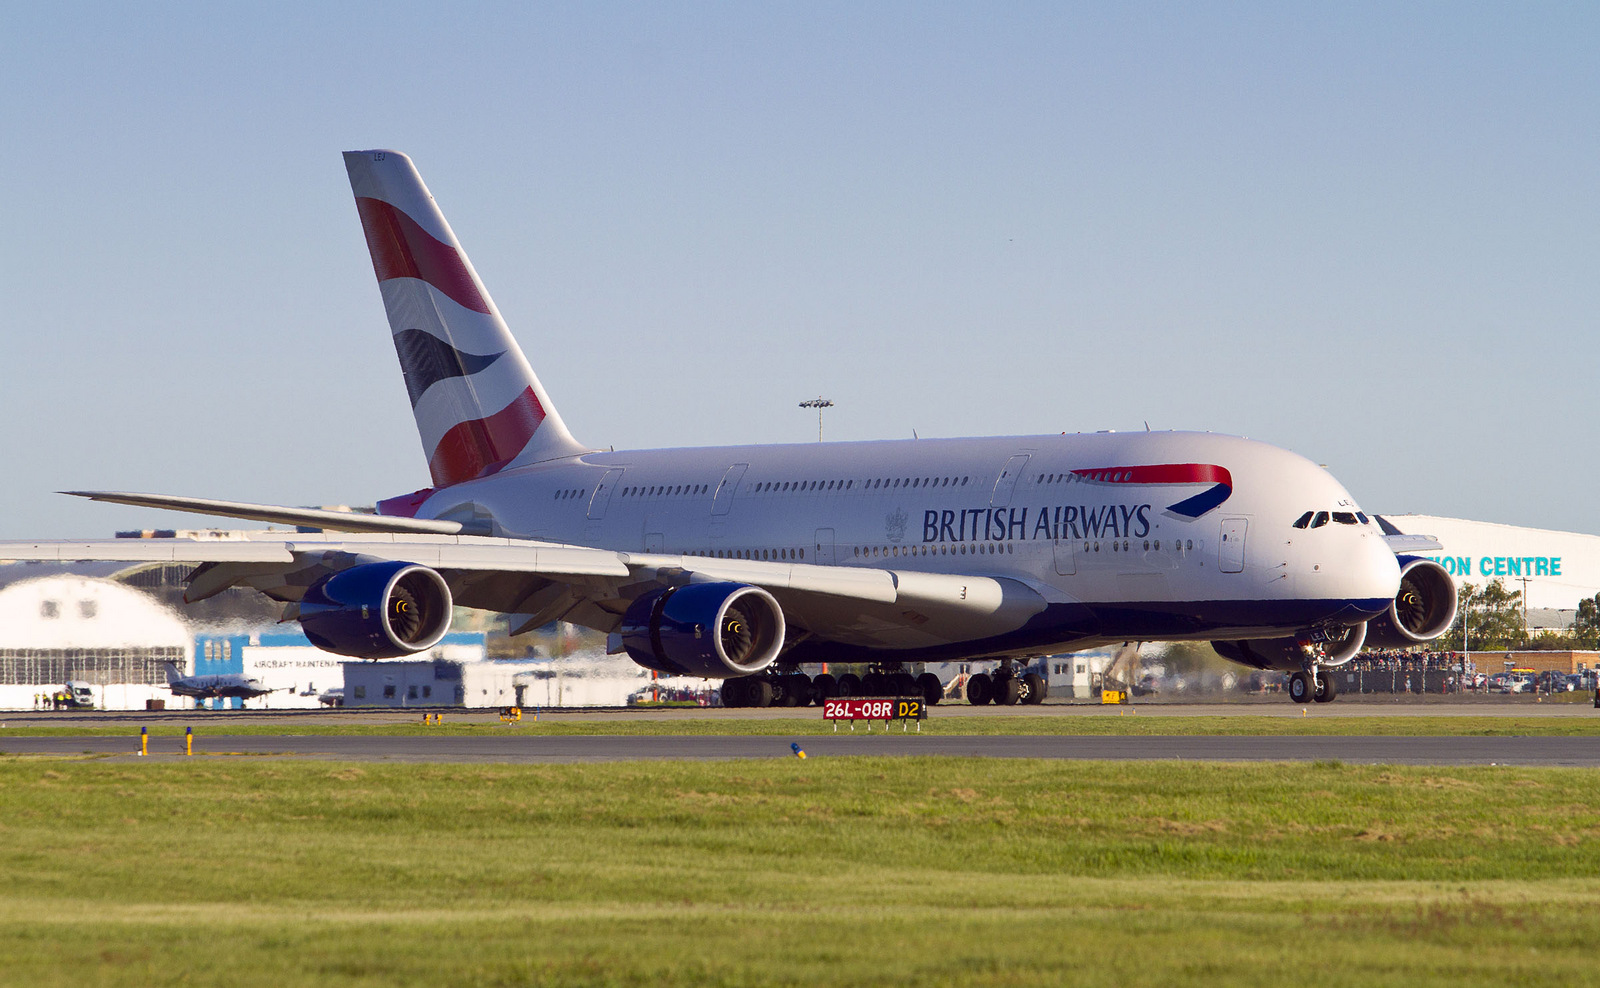 British Airways flight BA85 rolls out on YVR's Rwy 26L – the first scheduled A380 in Vancouver – Photo: Leighton Matthews | Pacific Air Photo